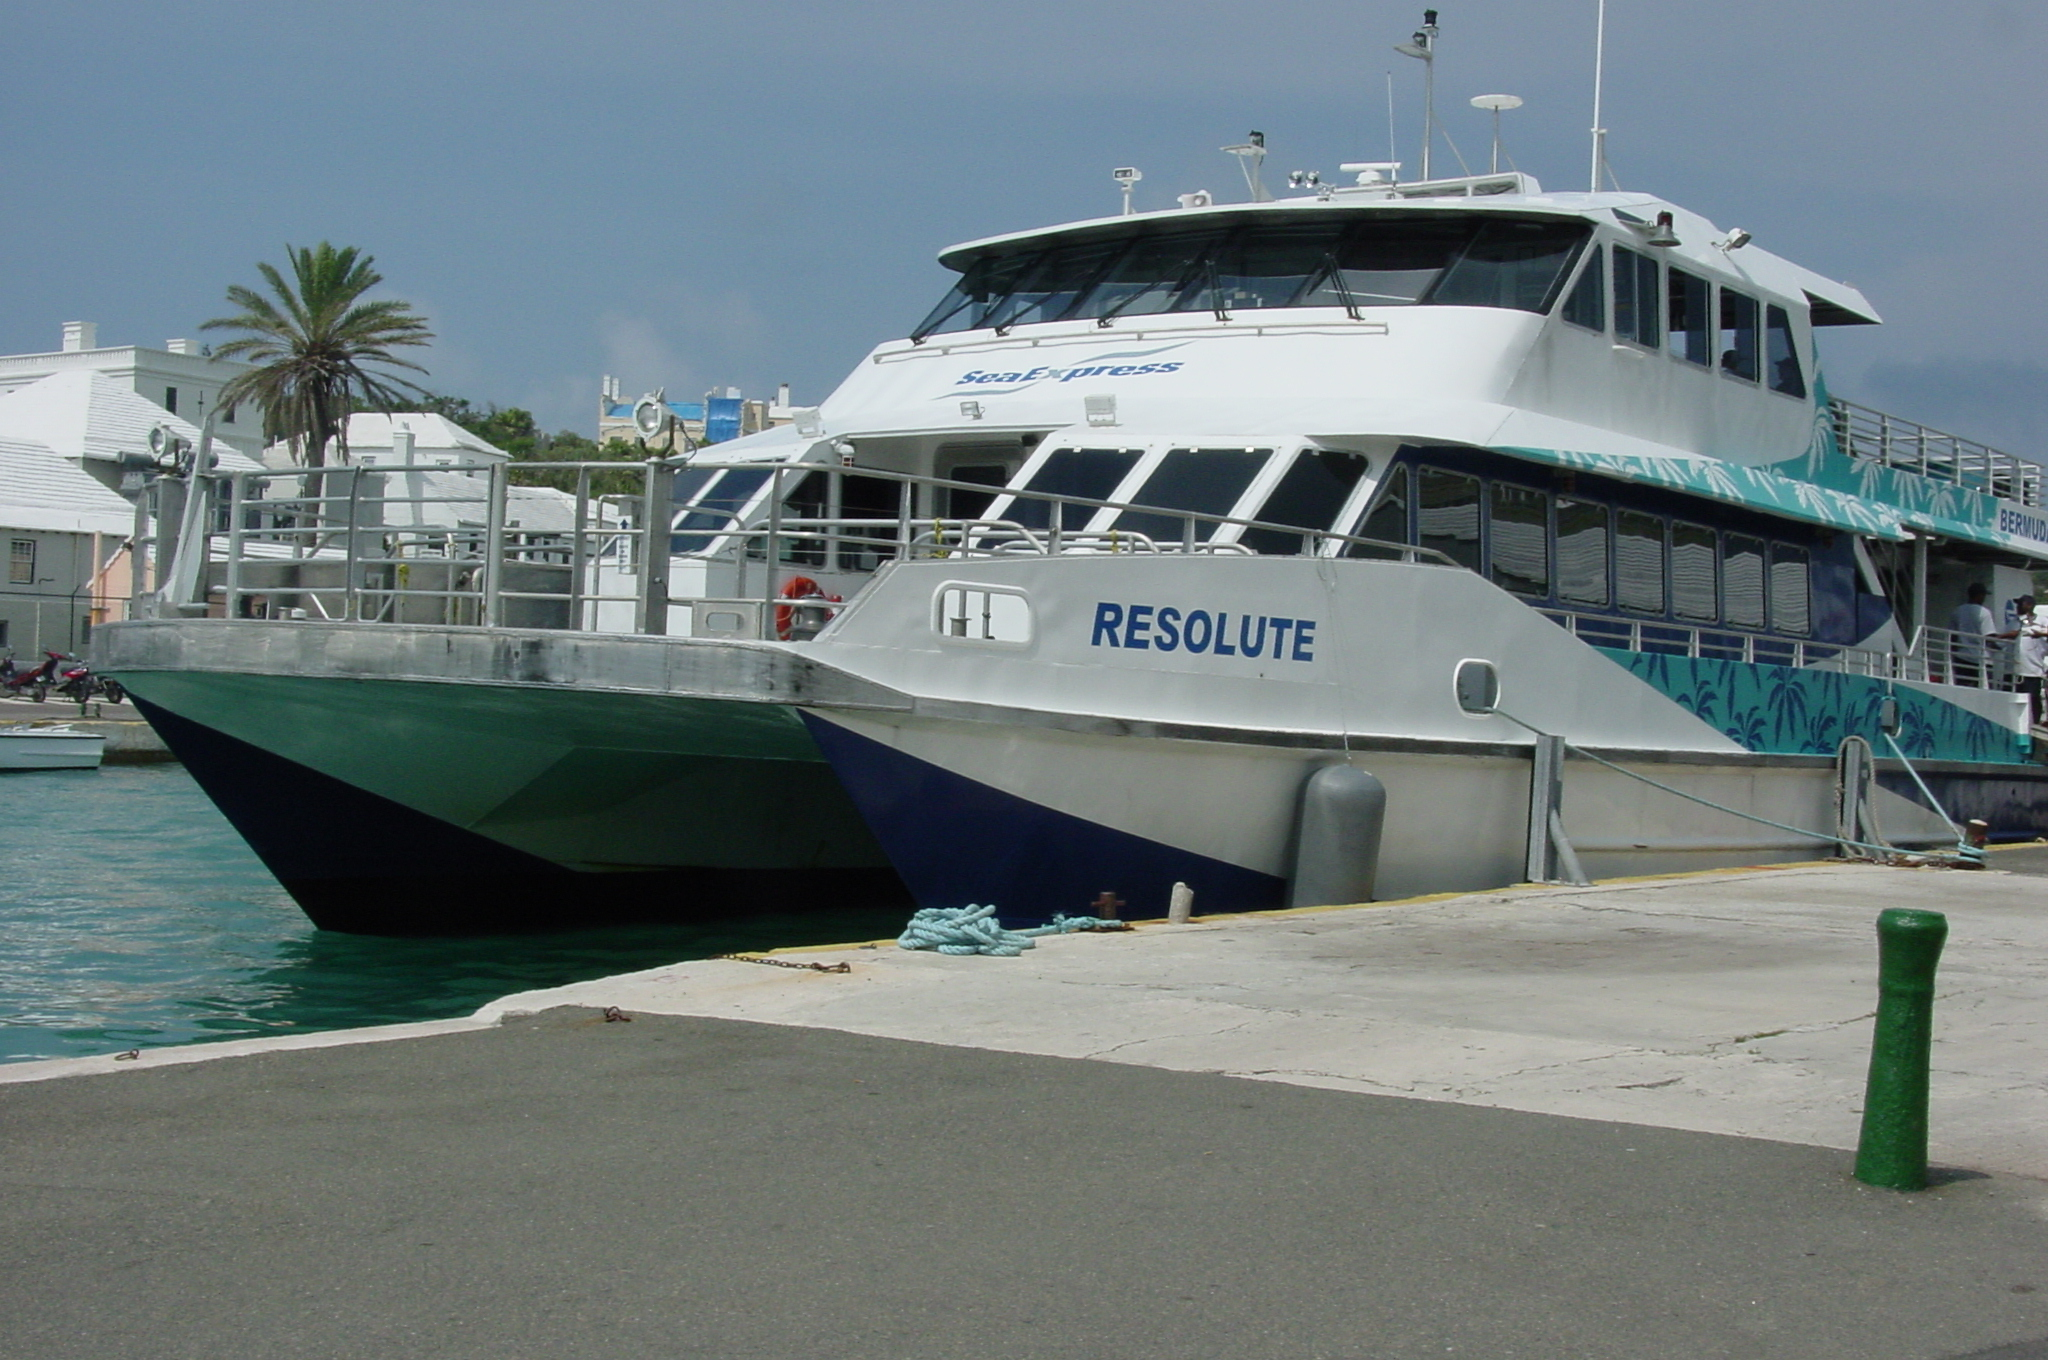 Government of Bermuda - Marine & Ports Services